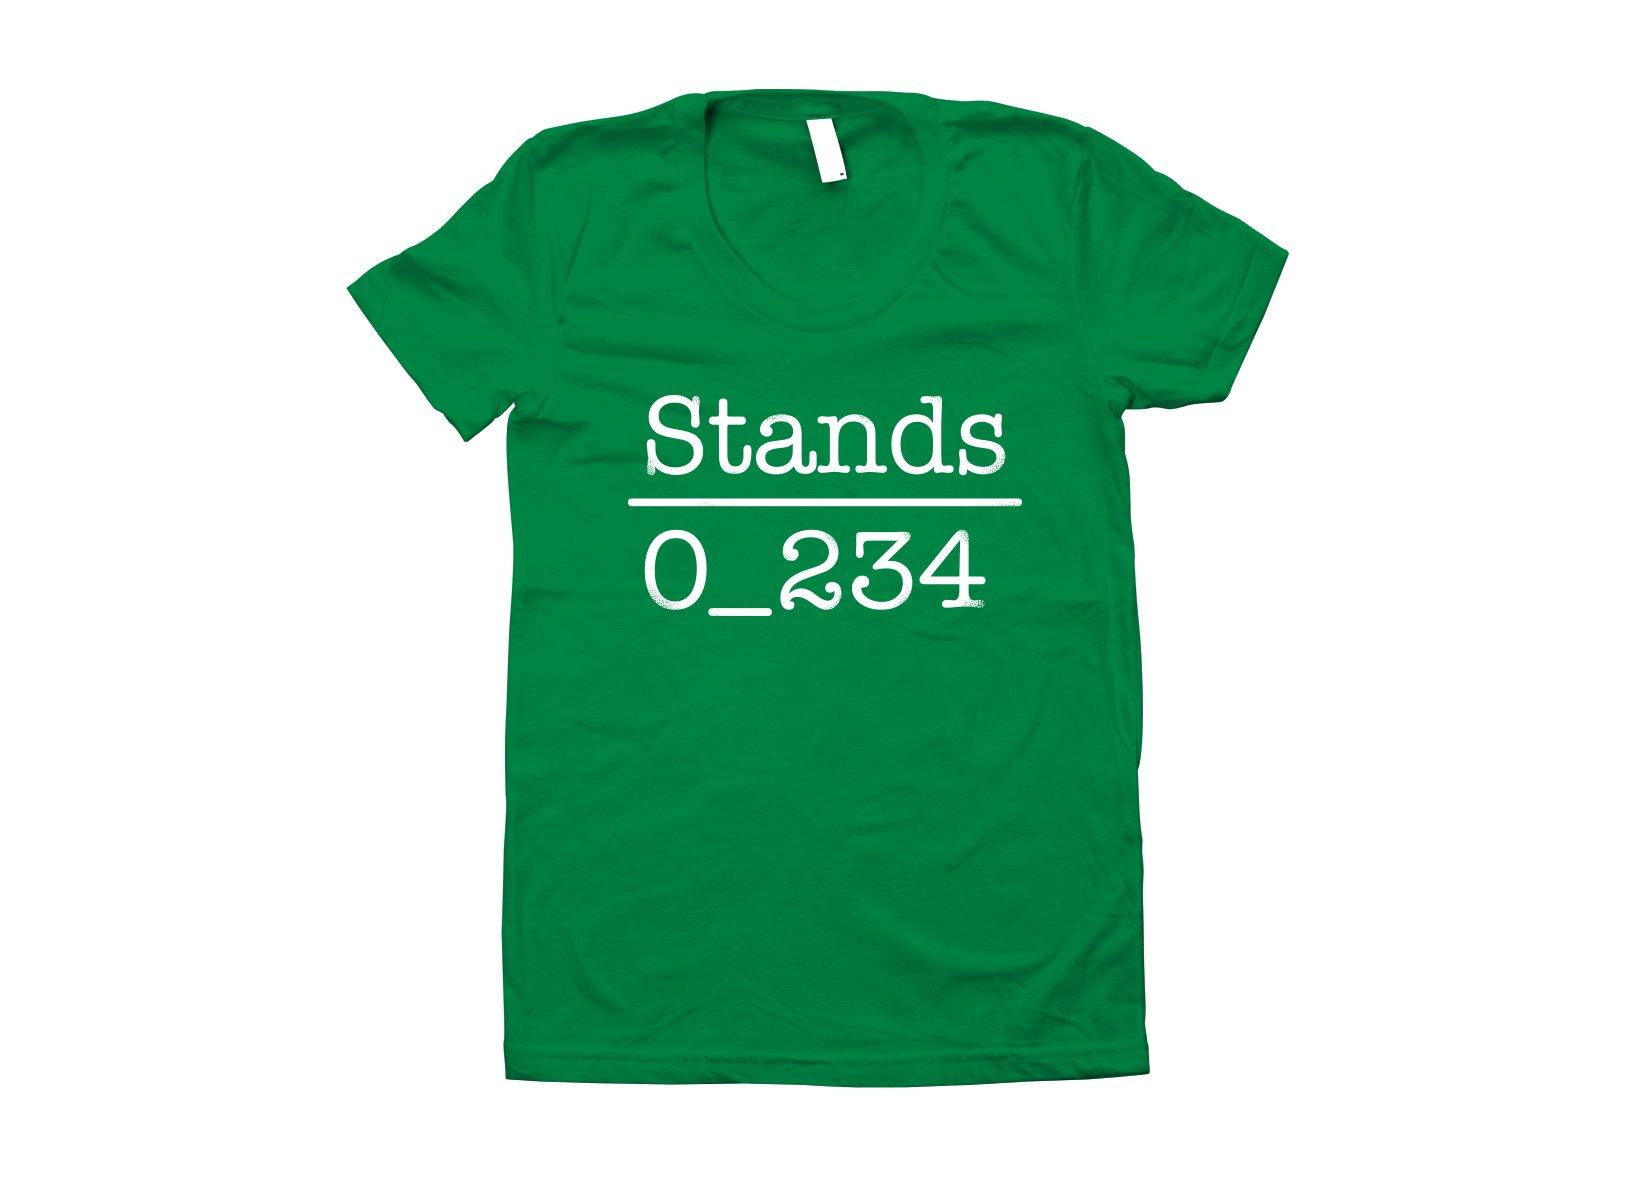 No 1 Under Stands on Juniors T-Shirt